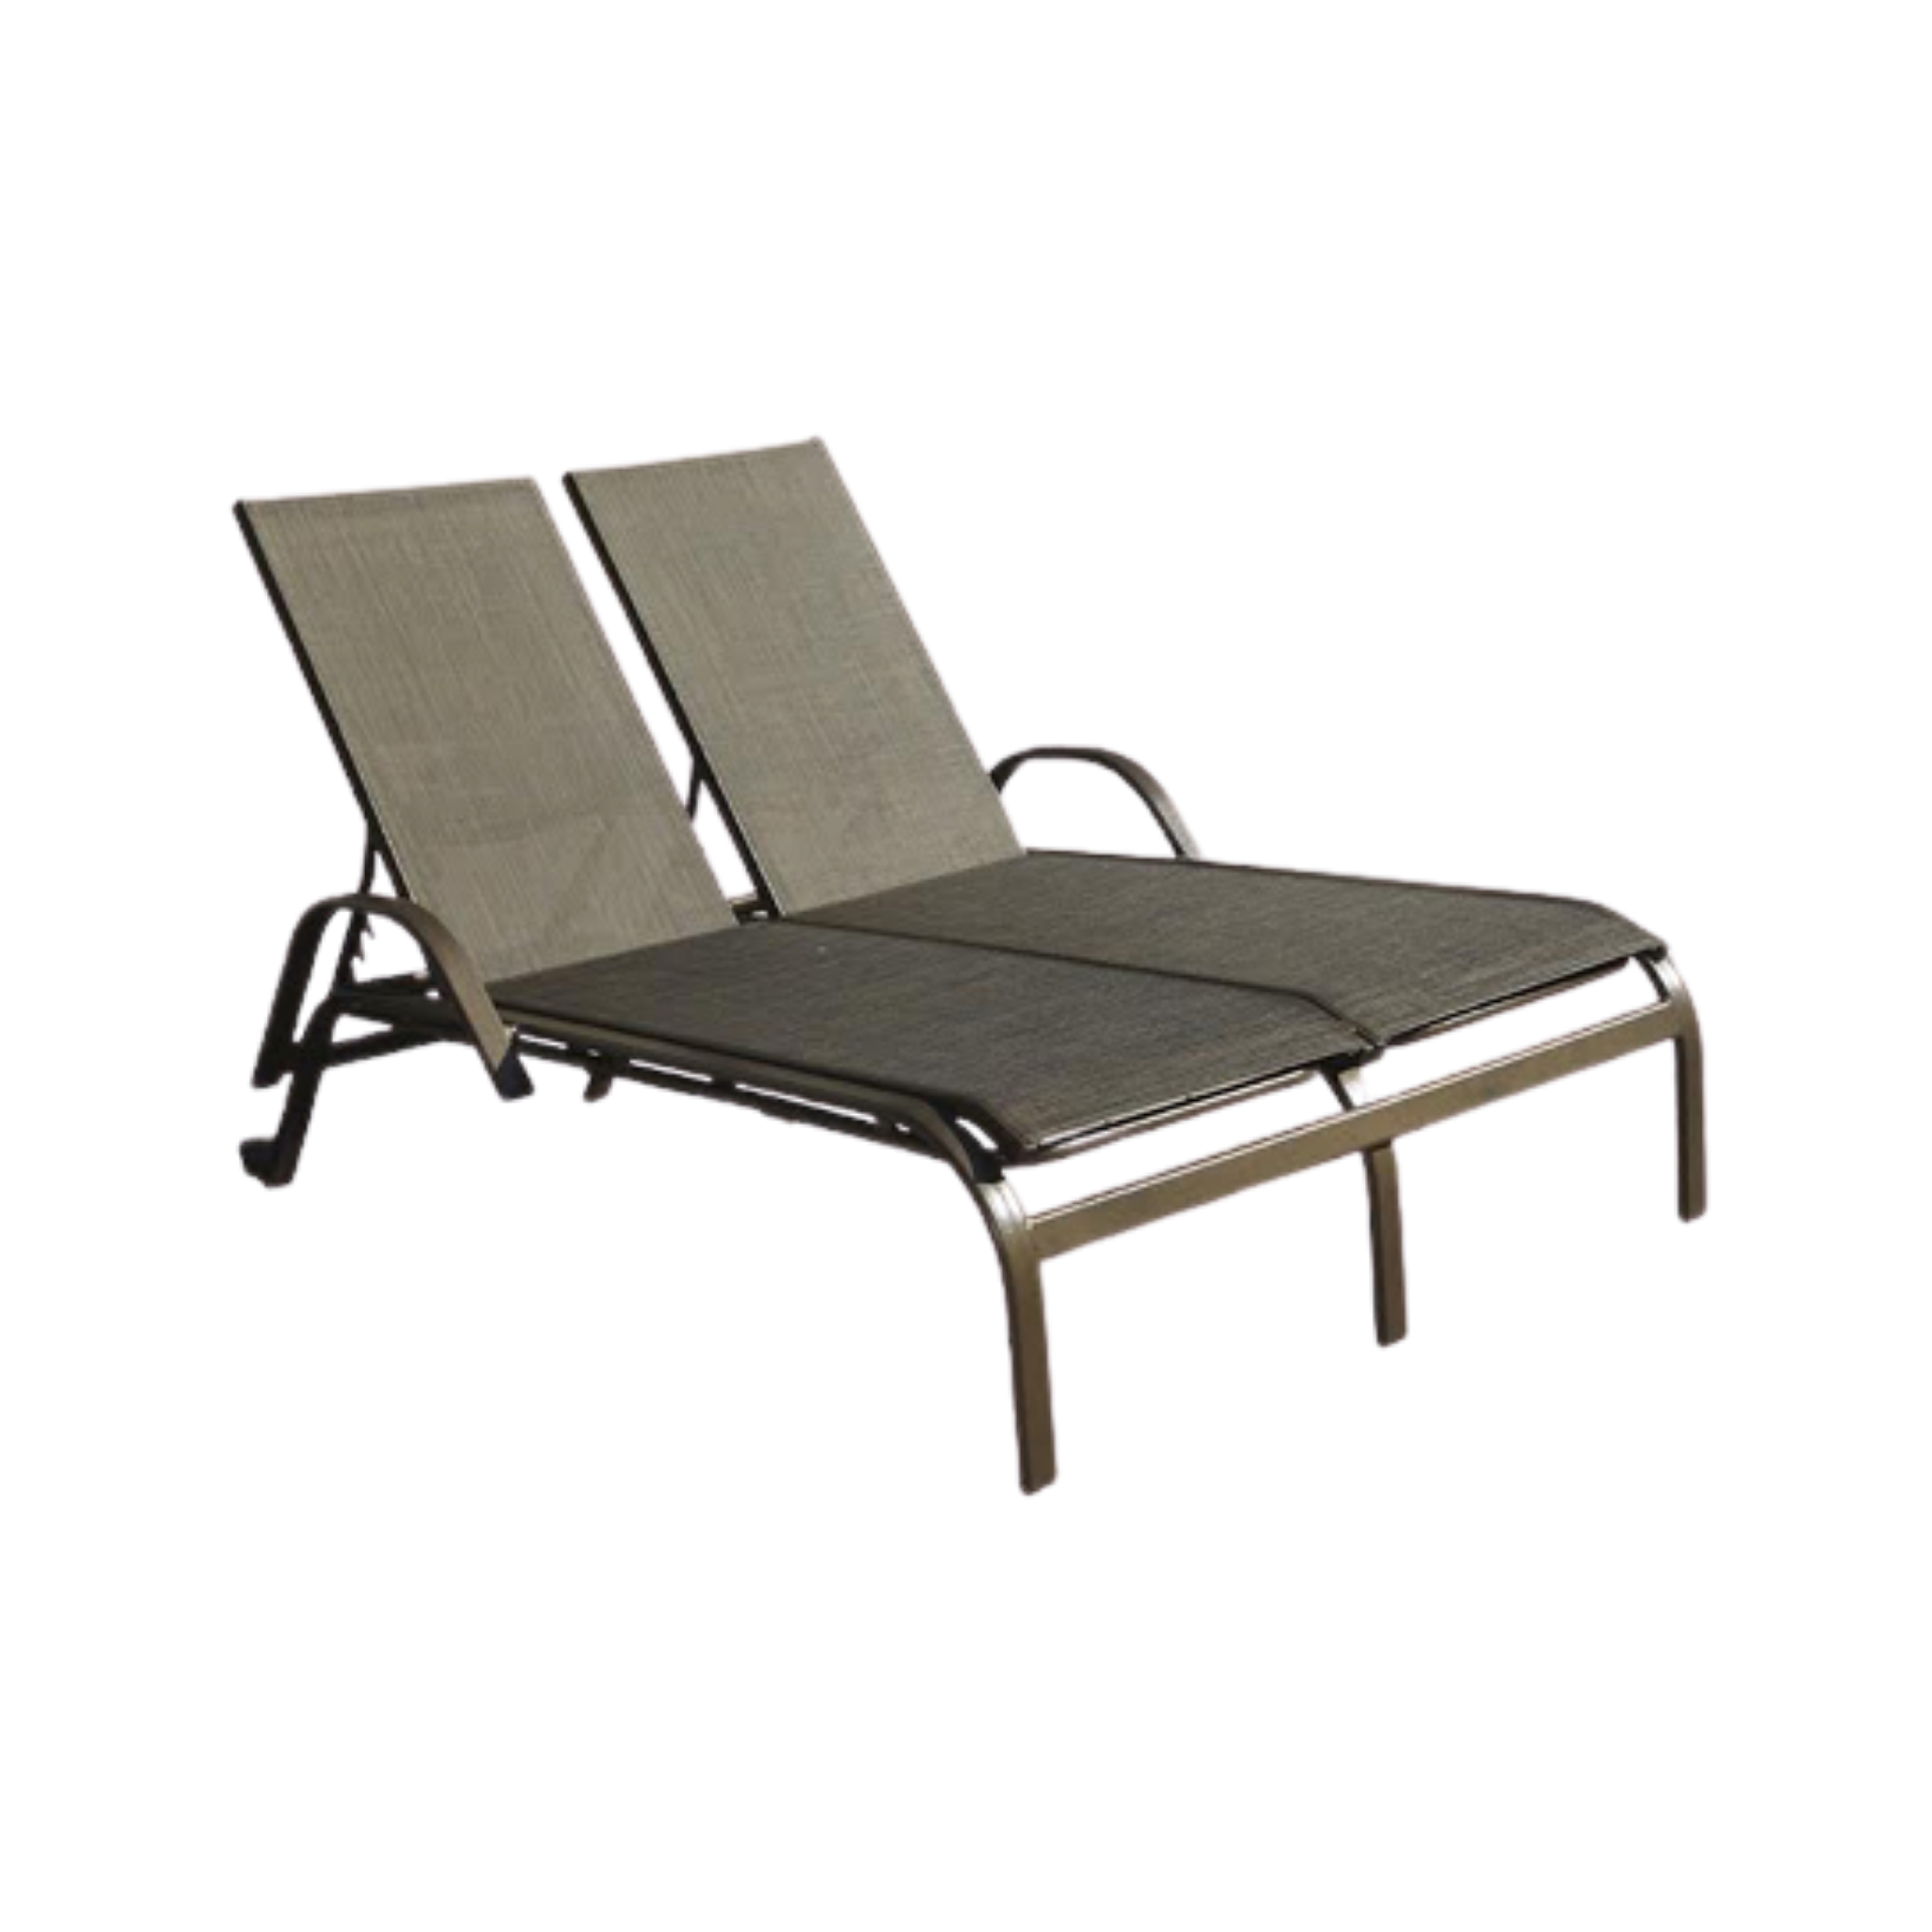 Tropicana Double Chaise Lounge Sunbrite Outdoor Furniture